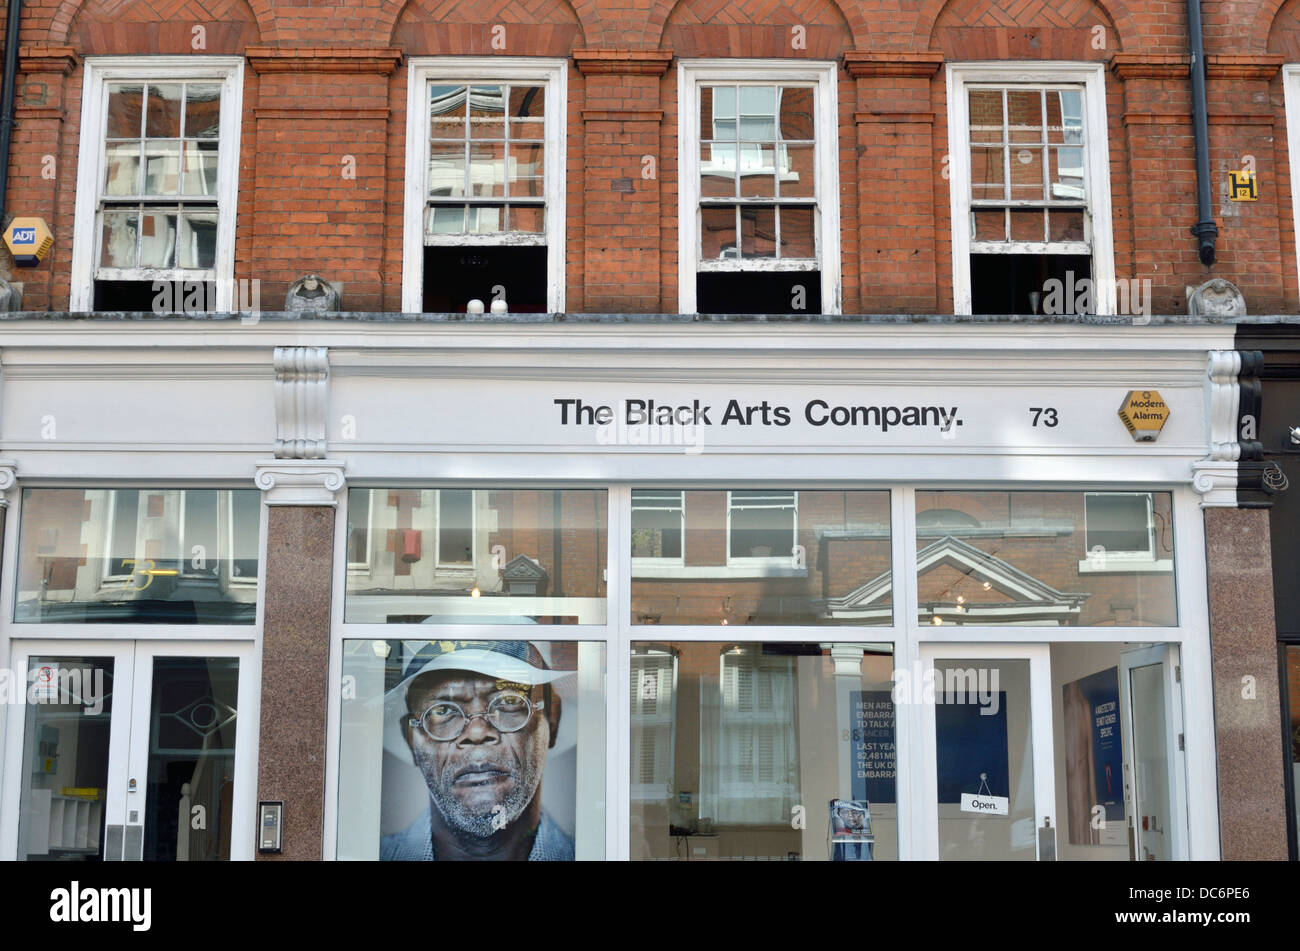 The Black Arts Company advertising organisation HQ in Great Titchfield Street, Fitzrovia, London, UK. - Stock Image